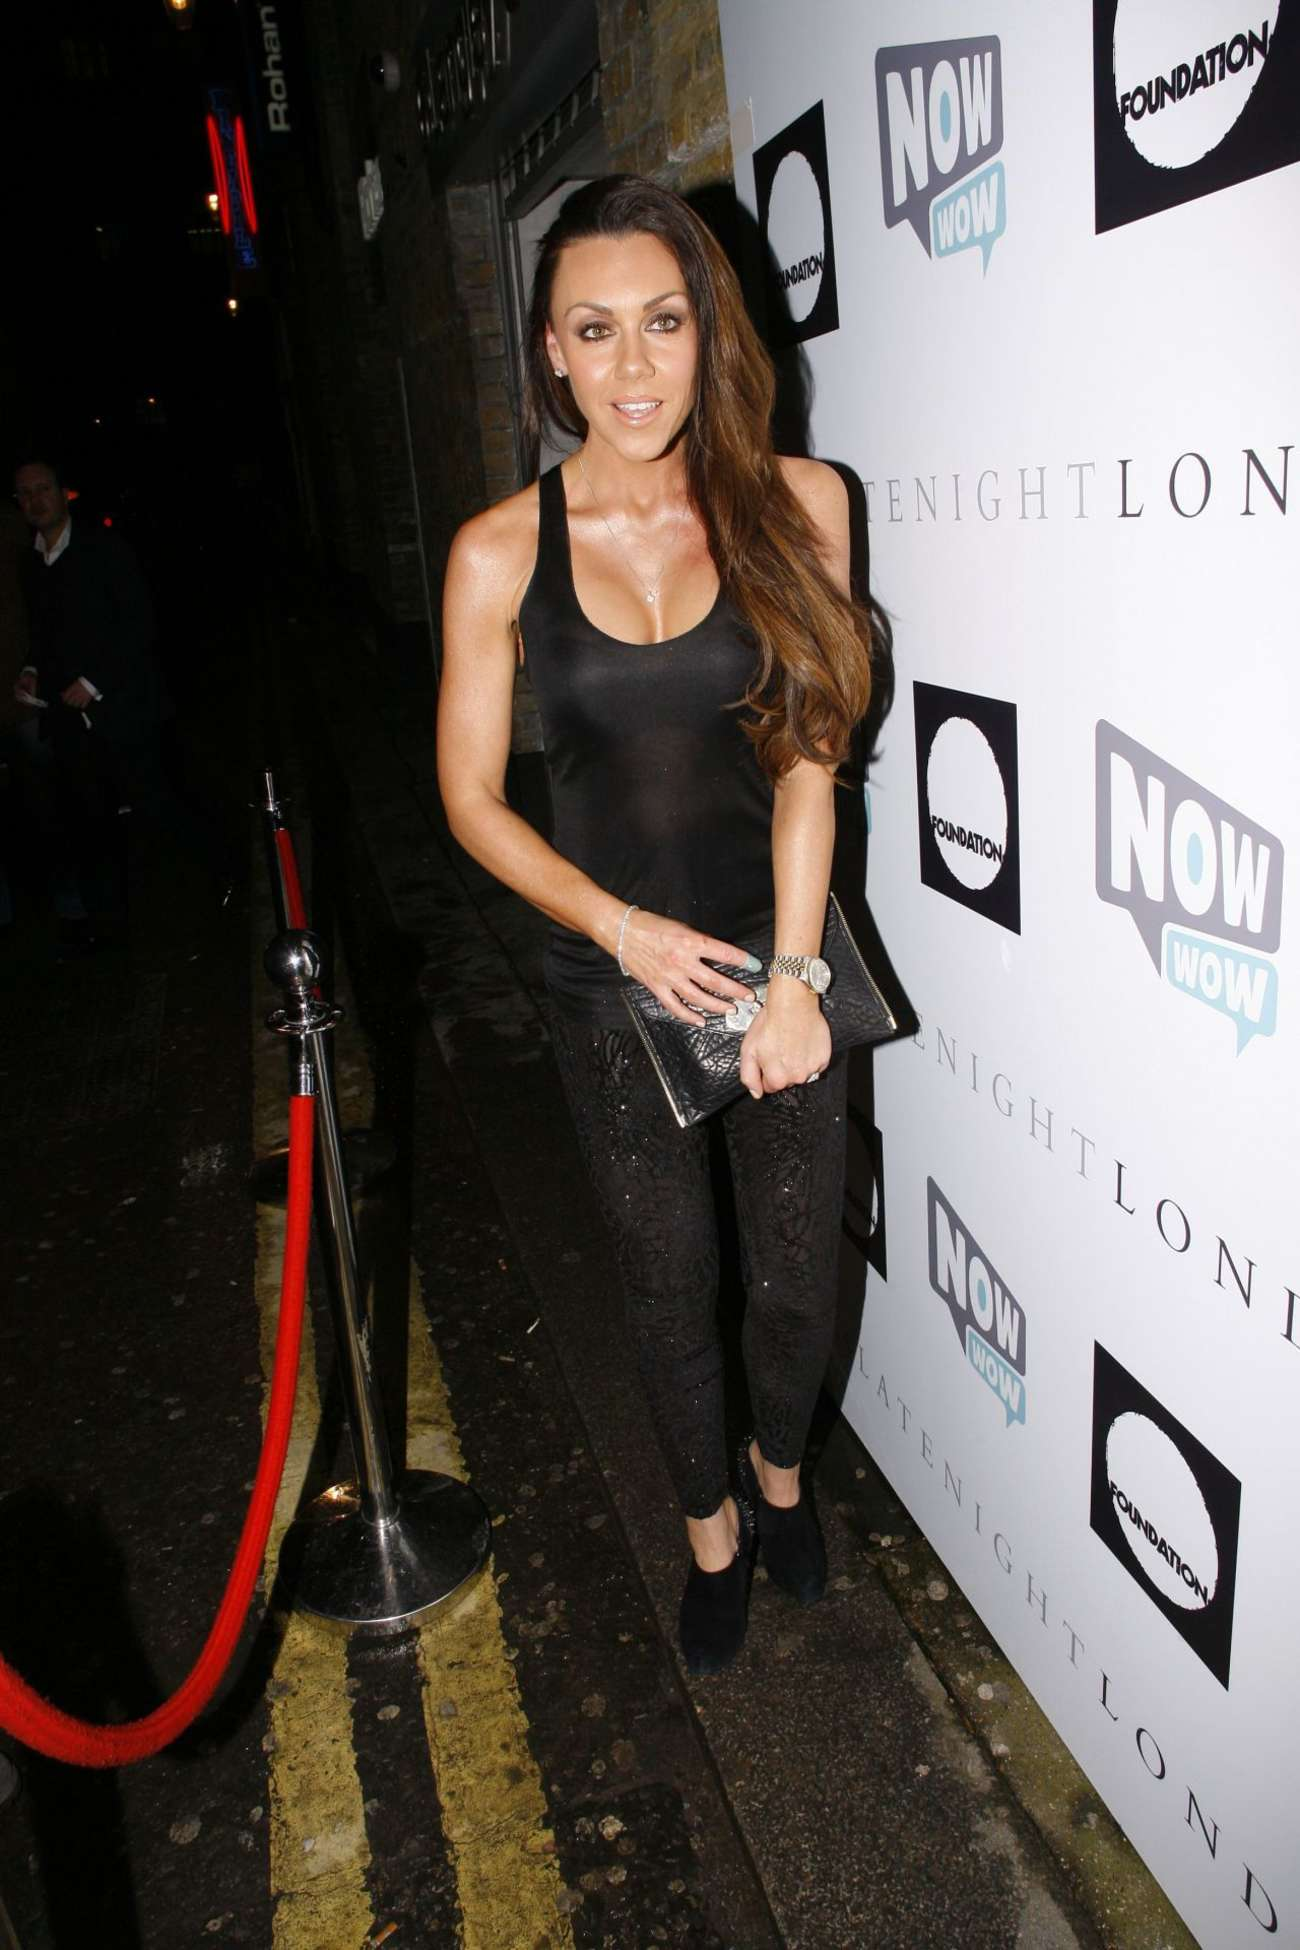 Michelle Heaton at Now Wow Charity Event in London